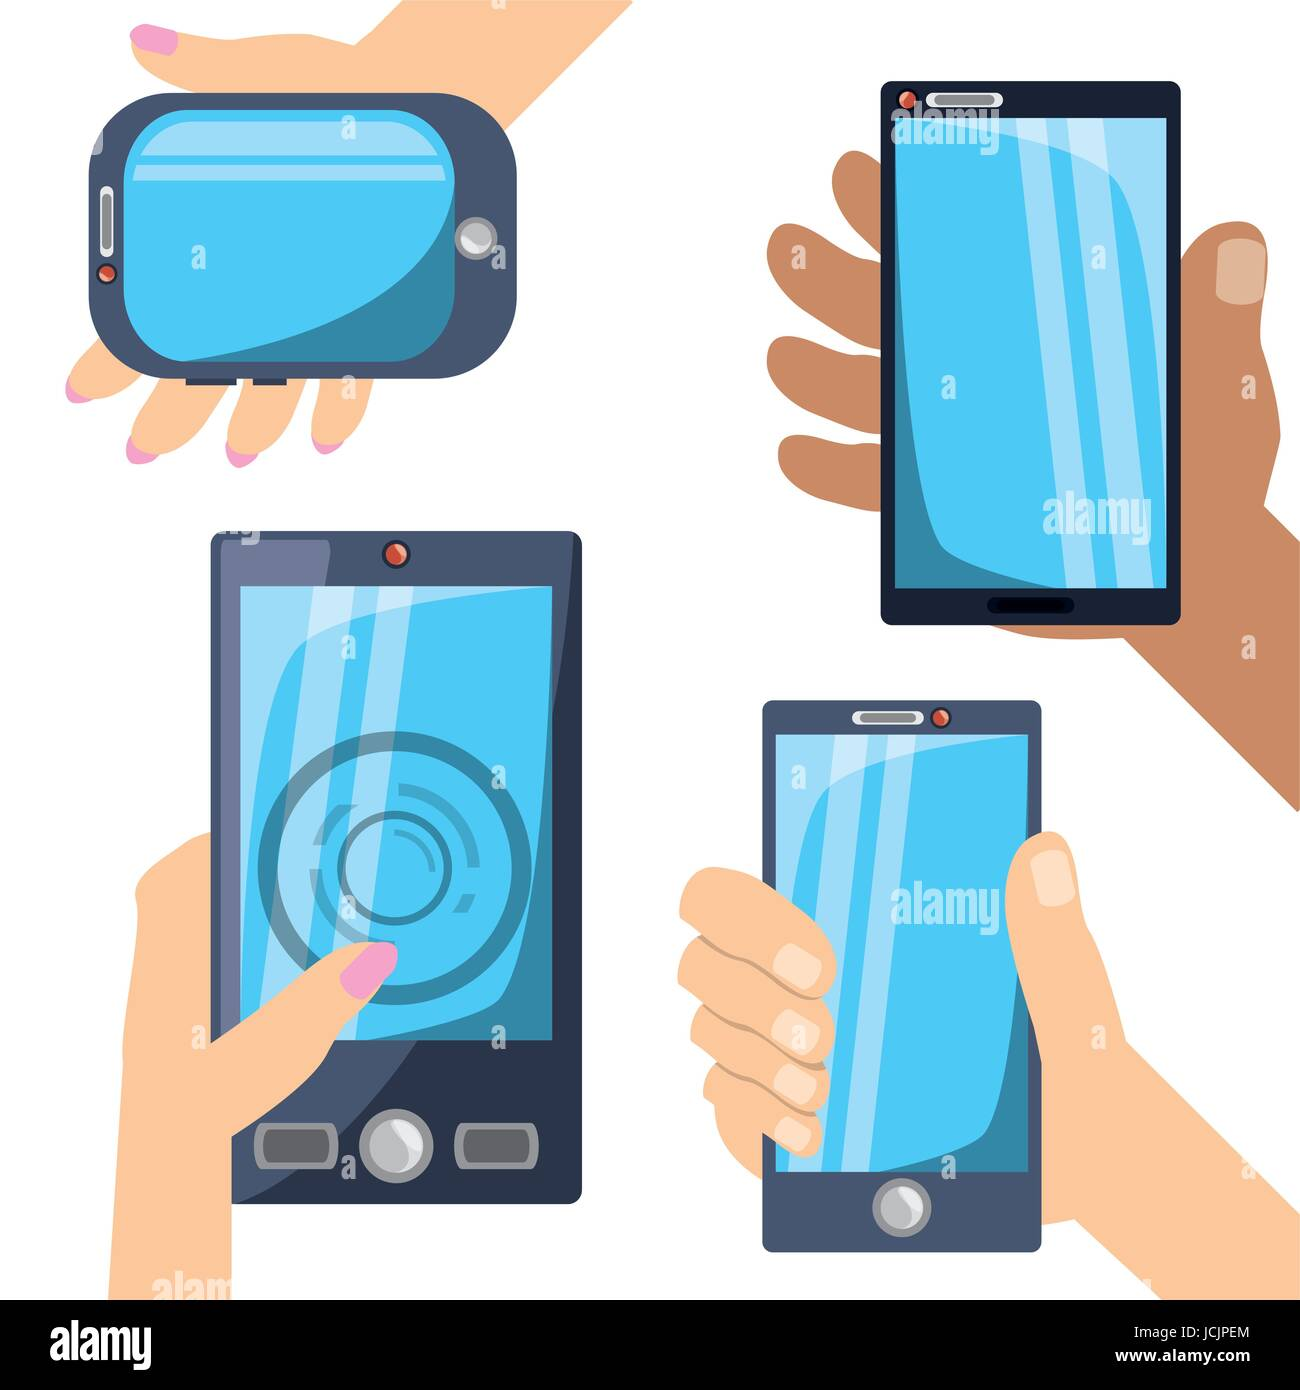 differents smartphones technology in the hands - Stock Image